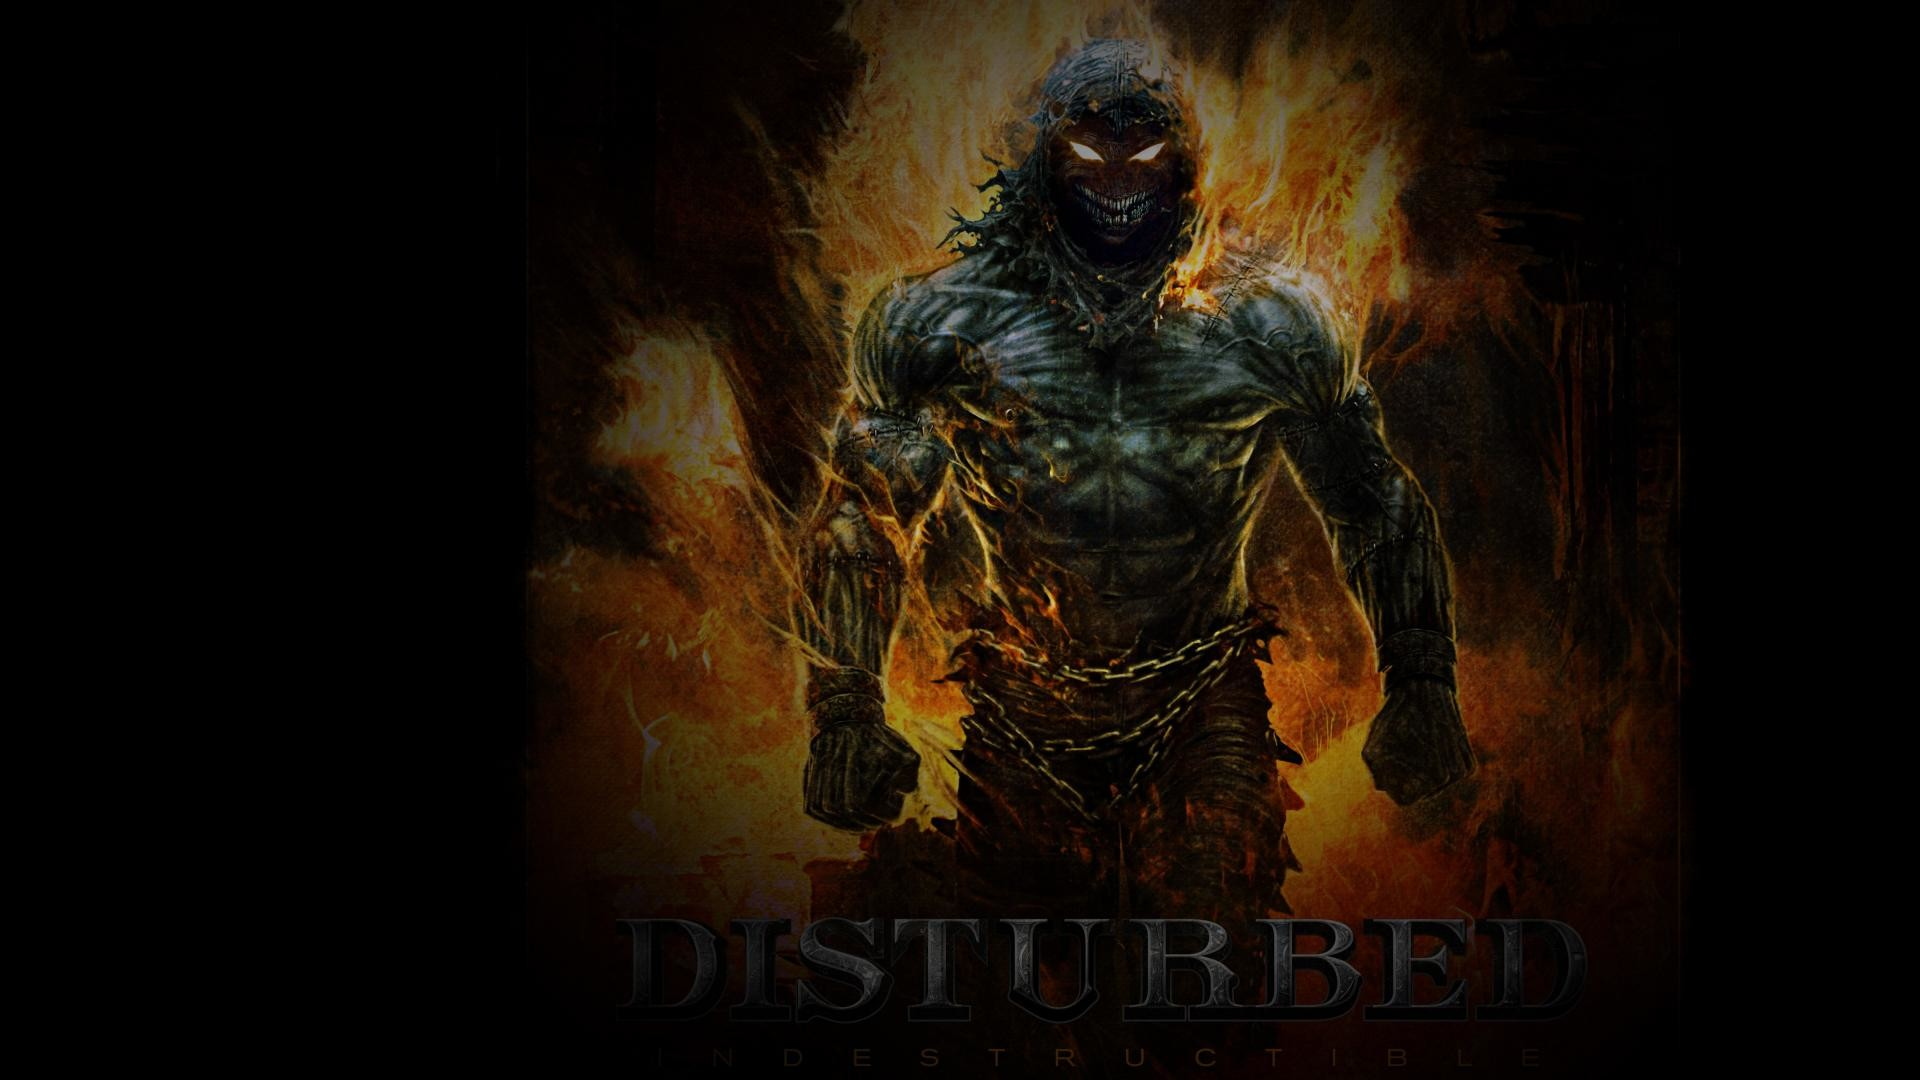 disturbed the guy wallpaper (58+ images)